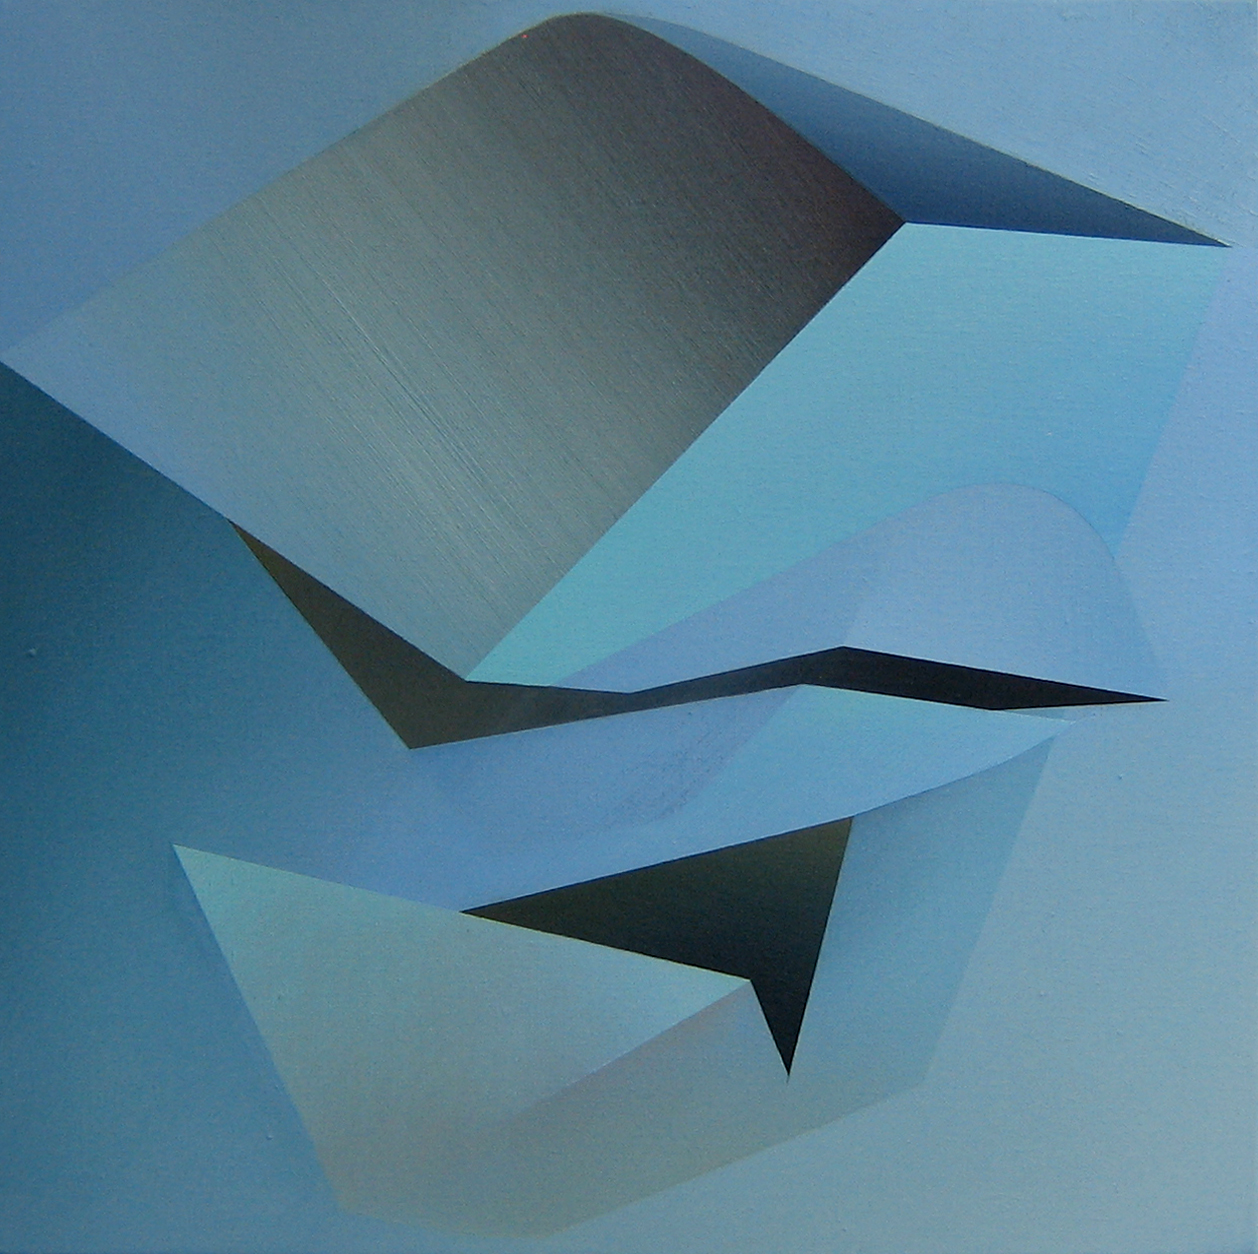 Larissa Tokmakova   Interstices X   2010  Oil on linen  Signed by the artist,  verso   24 x 24 inches